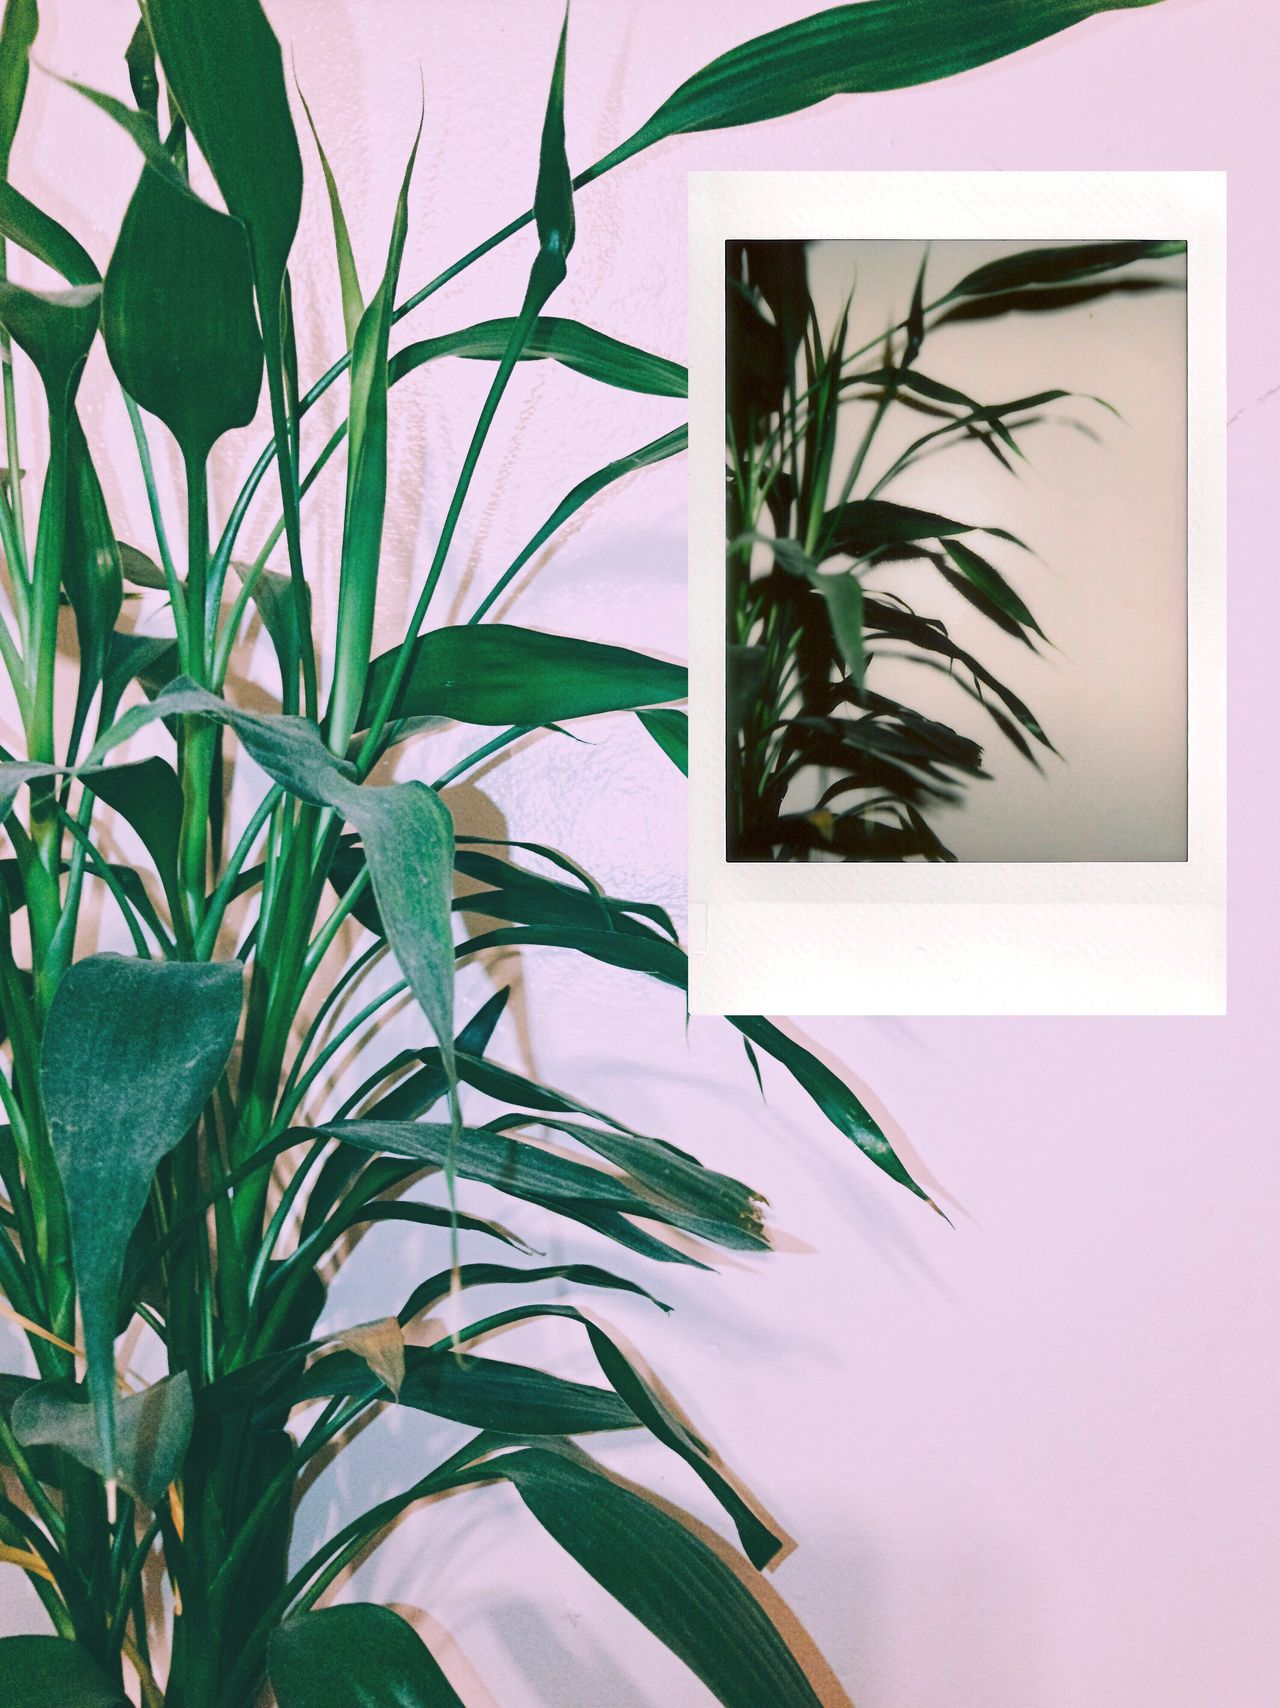 I think this is one of my favorite shots that I've done for this project so far for the simple fact that the instax shot came out exactly the way I wanted it to 🌿👌🏻 Instant Photo A Day Leaf Plant Nature Growth Green Color No People Outdoors Day Sky Film Photography Film Is Not Dead Minimalism Aesthetics Simplicity